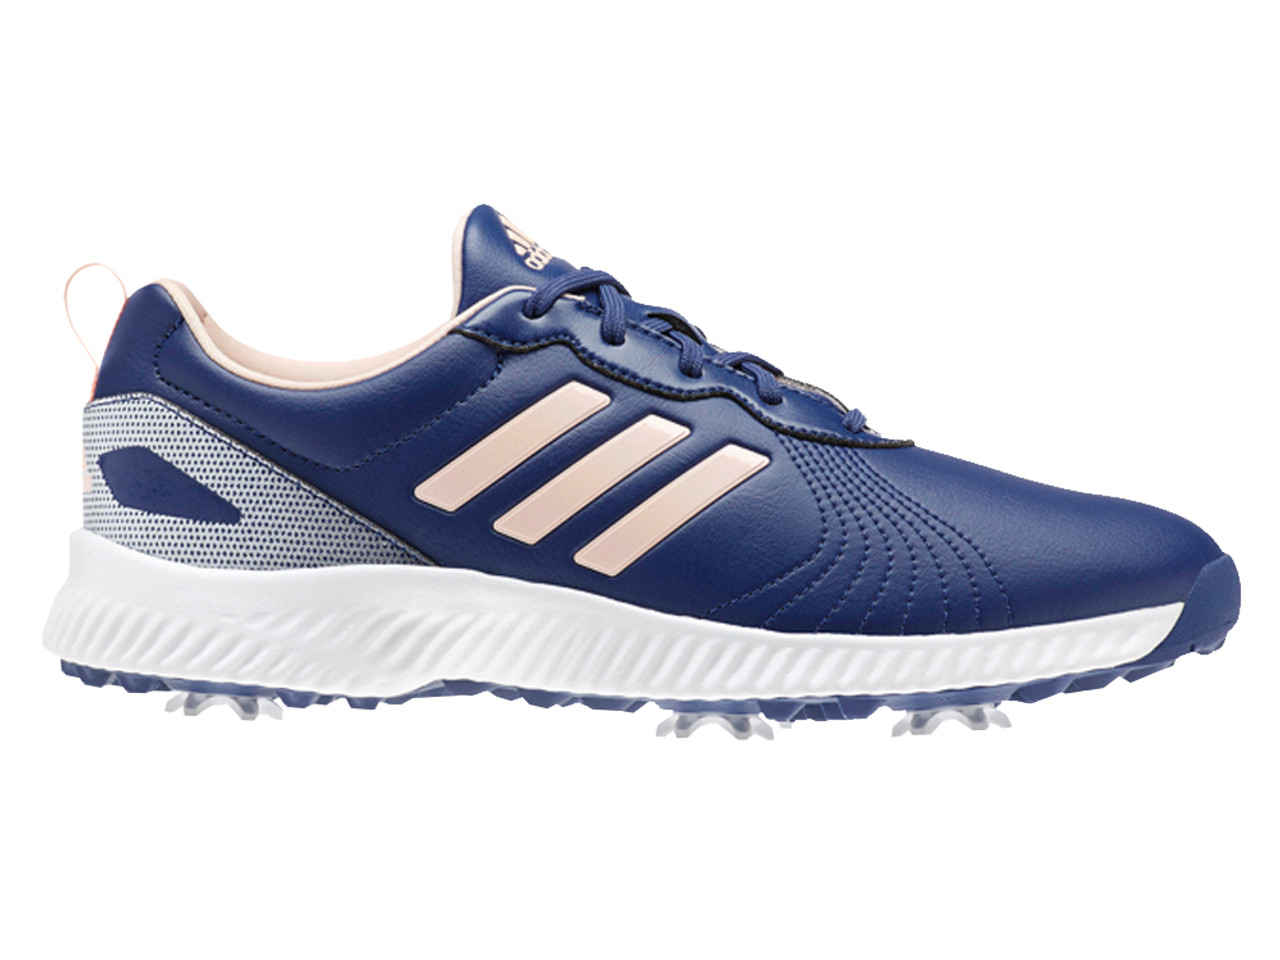 3c949d0a05088 Adidas Ladies Response Bounce Golf Shoes - Navy Clear Orange. Adidas